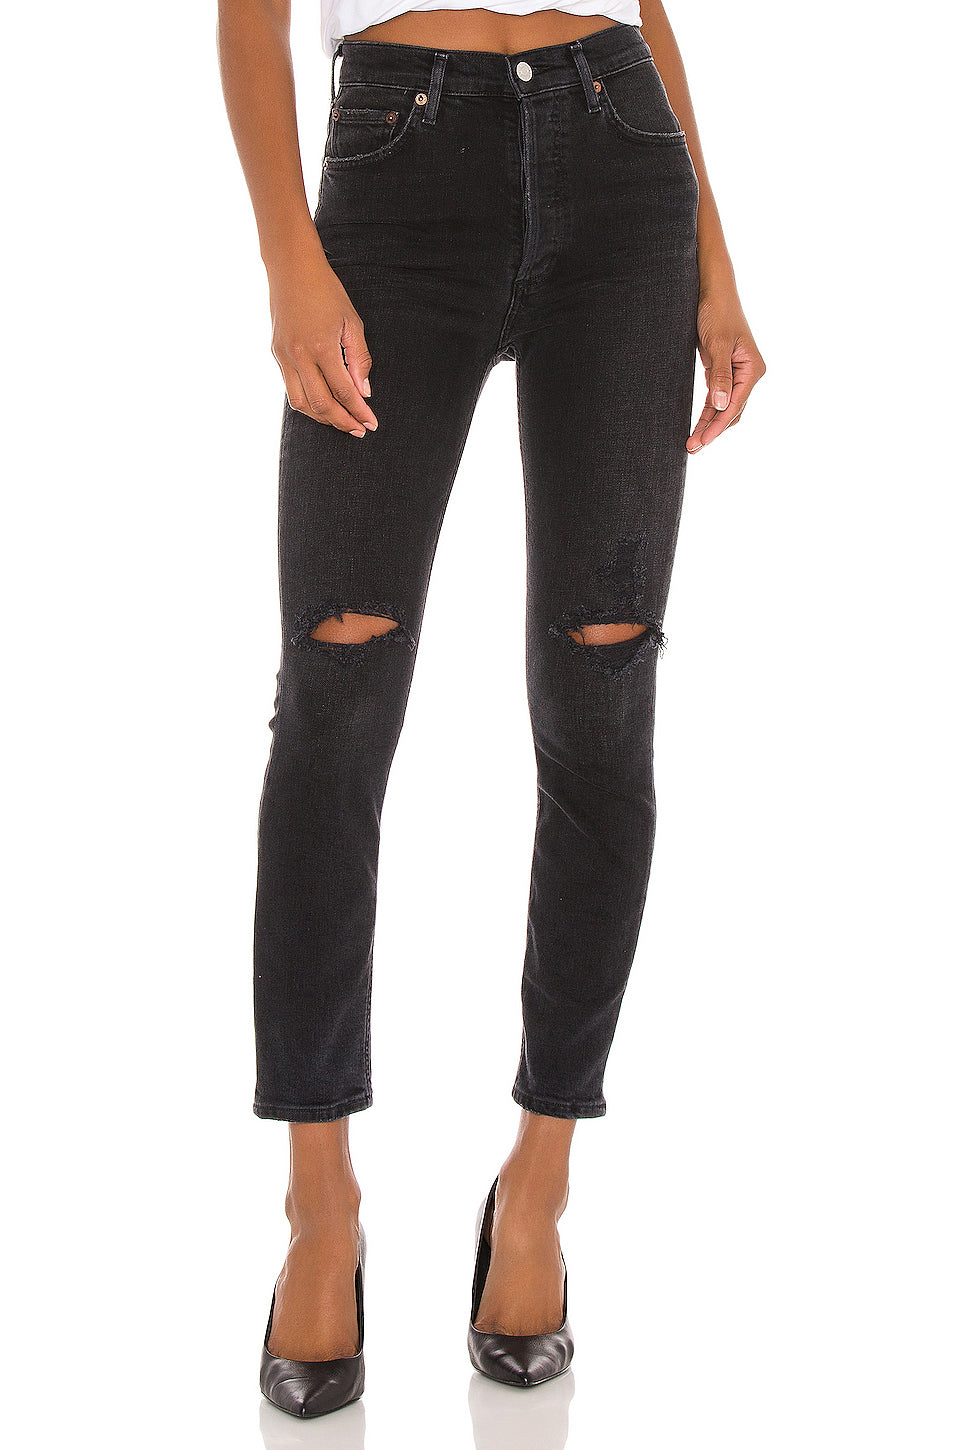 Nico High Rise Slim Fit Jean in Cassette